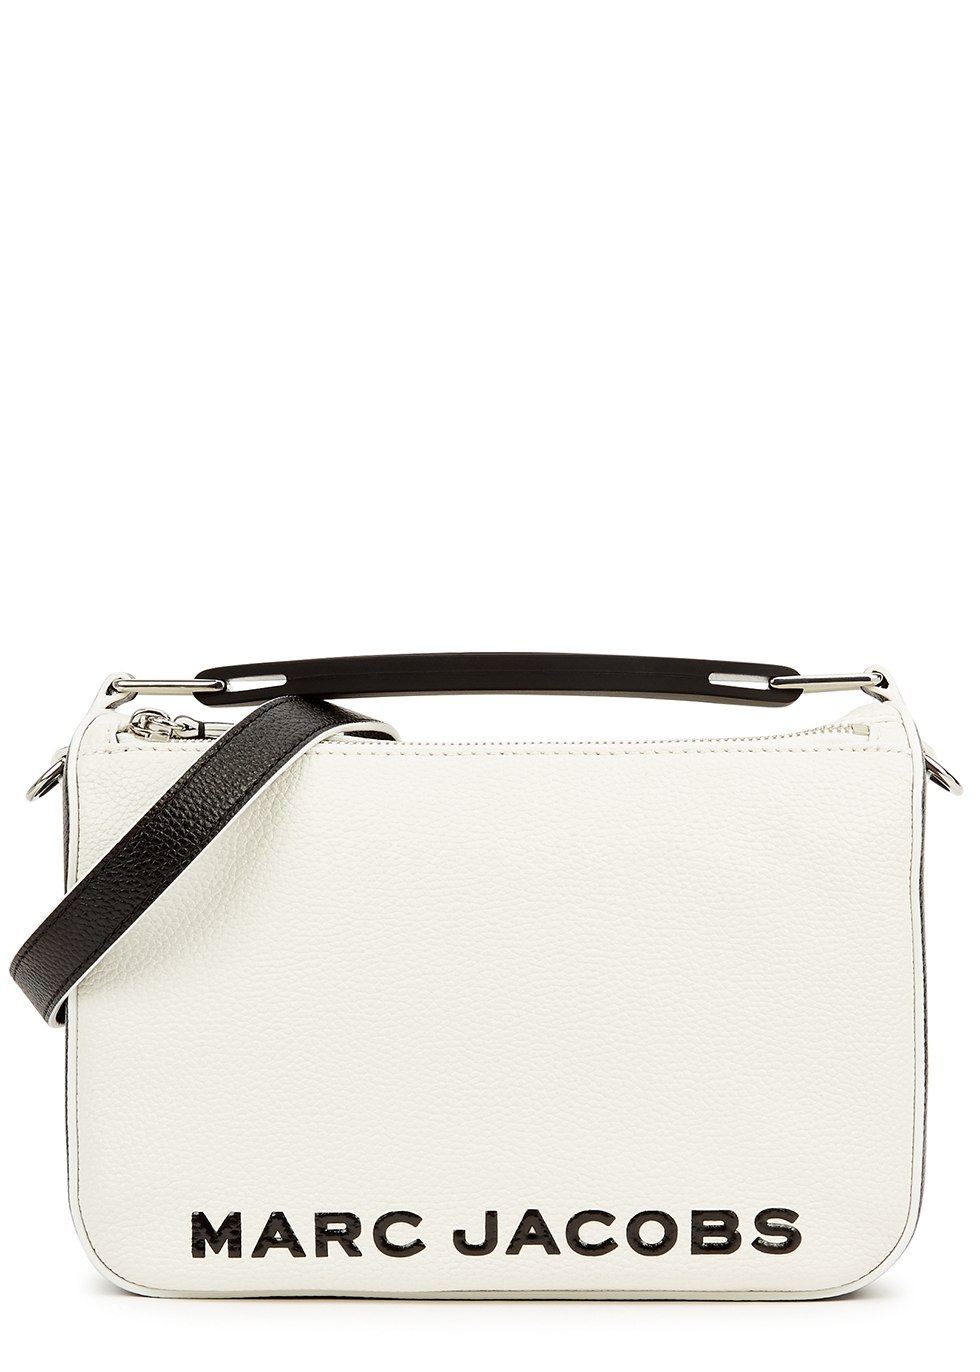 The Soft Box 23 white leather cross-body bag